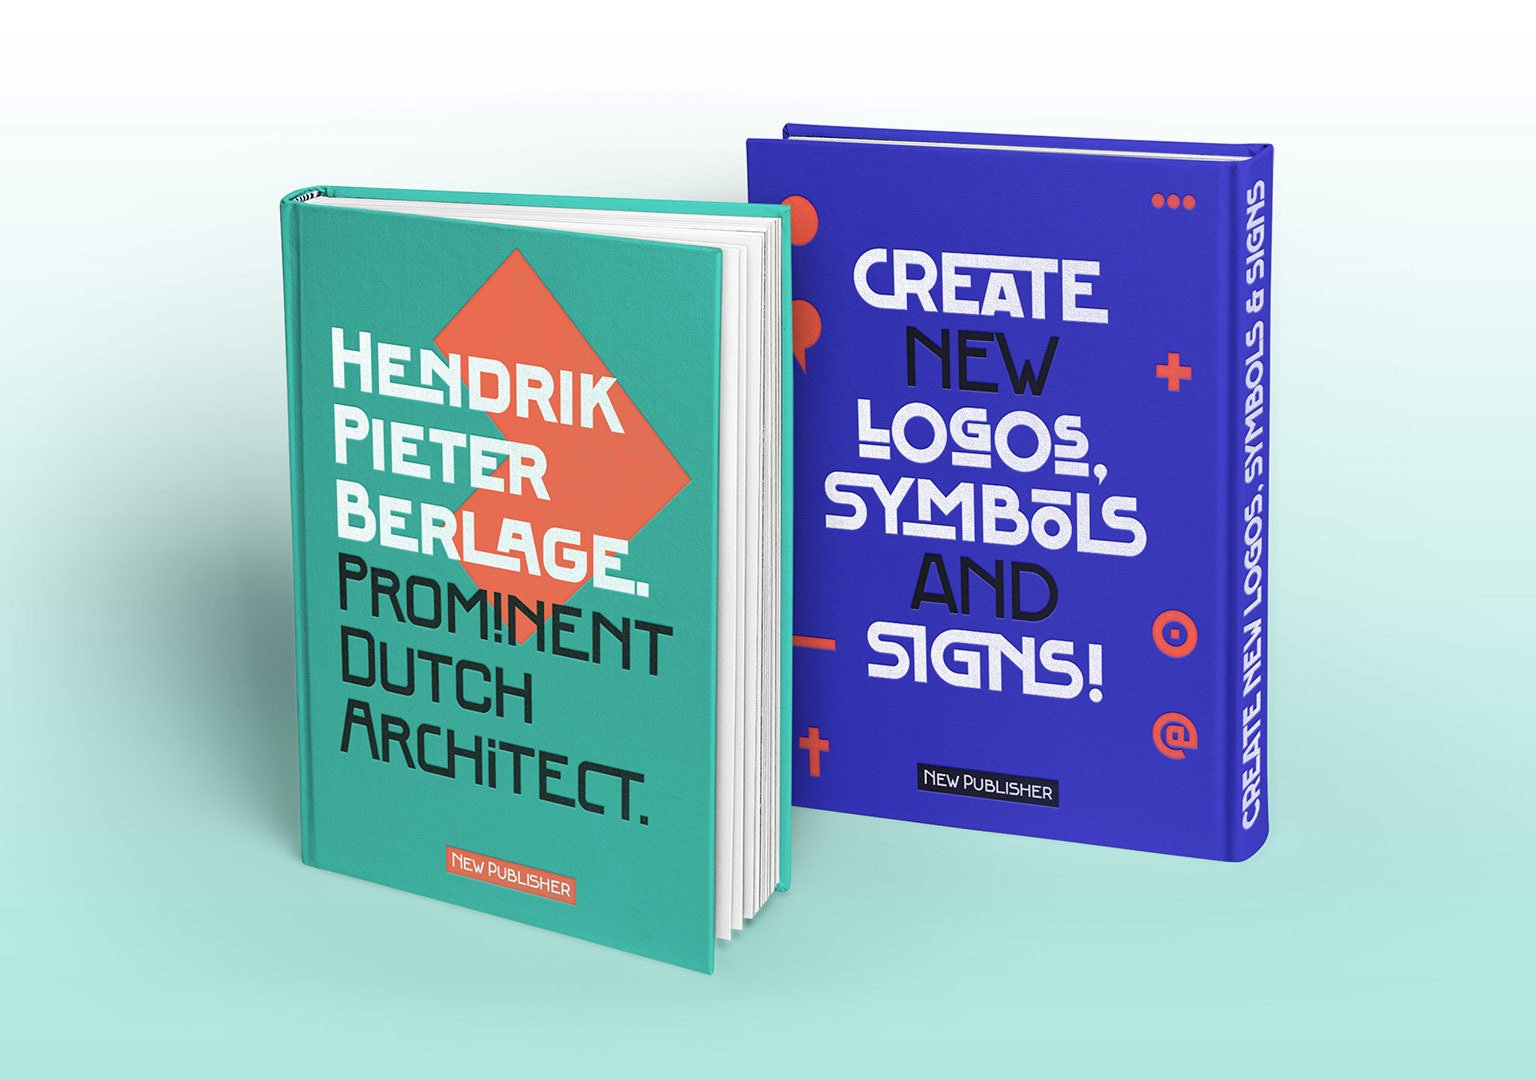 FF Berlage by Donald Beekman is the newest typeface from FontShop. Inspired by architect Hendrik Pieter Berlage, the father of modern architecture in Holland, the font is based on the lettering on two of the designer's most famous buildings, Amsterdam's Beurs van Berlage and De Burcht.   fontshop.com  From the Editors' Inbox: October 2016